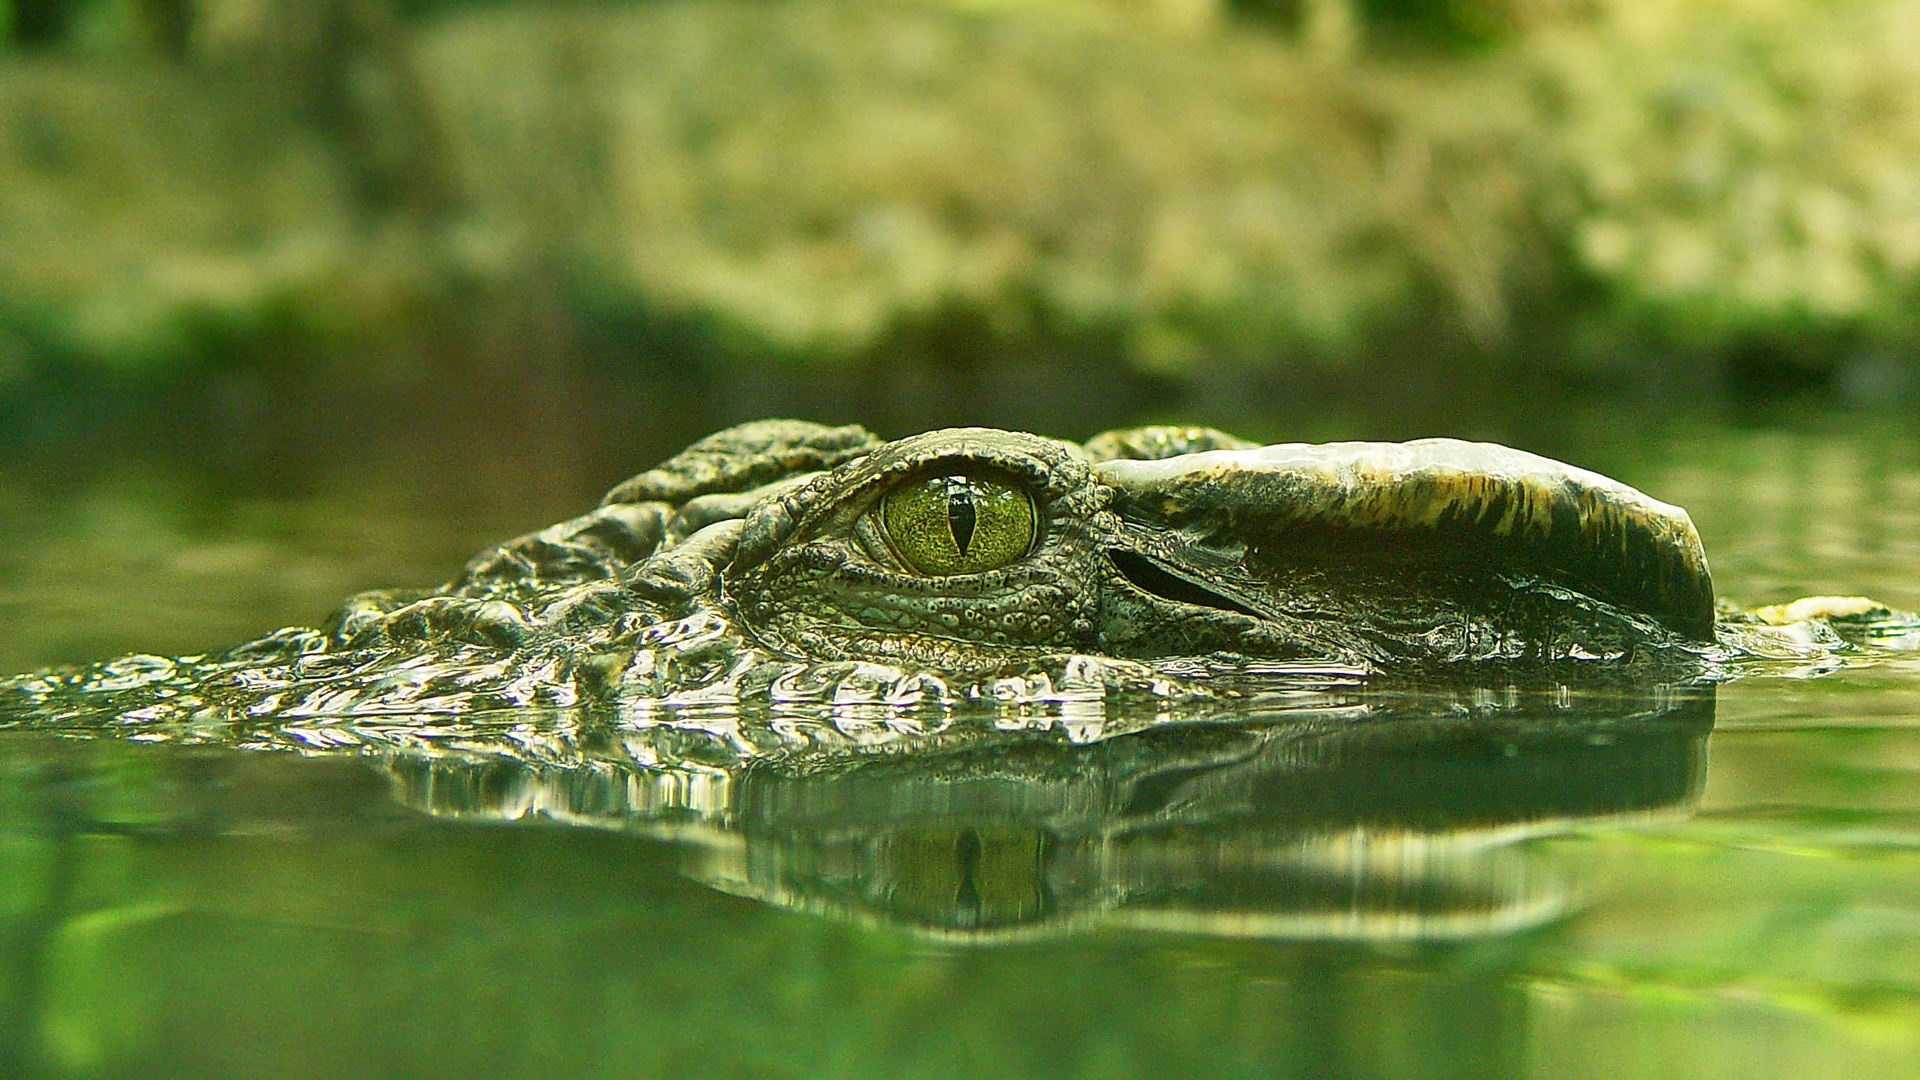 Crocodile Wallpapers 1920x1080,